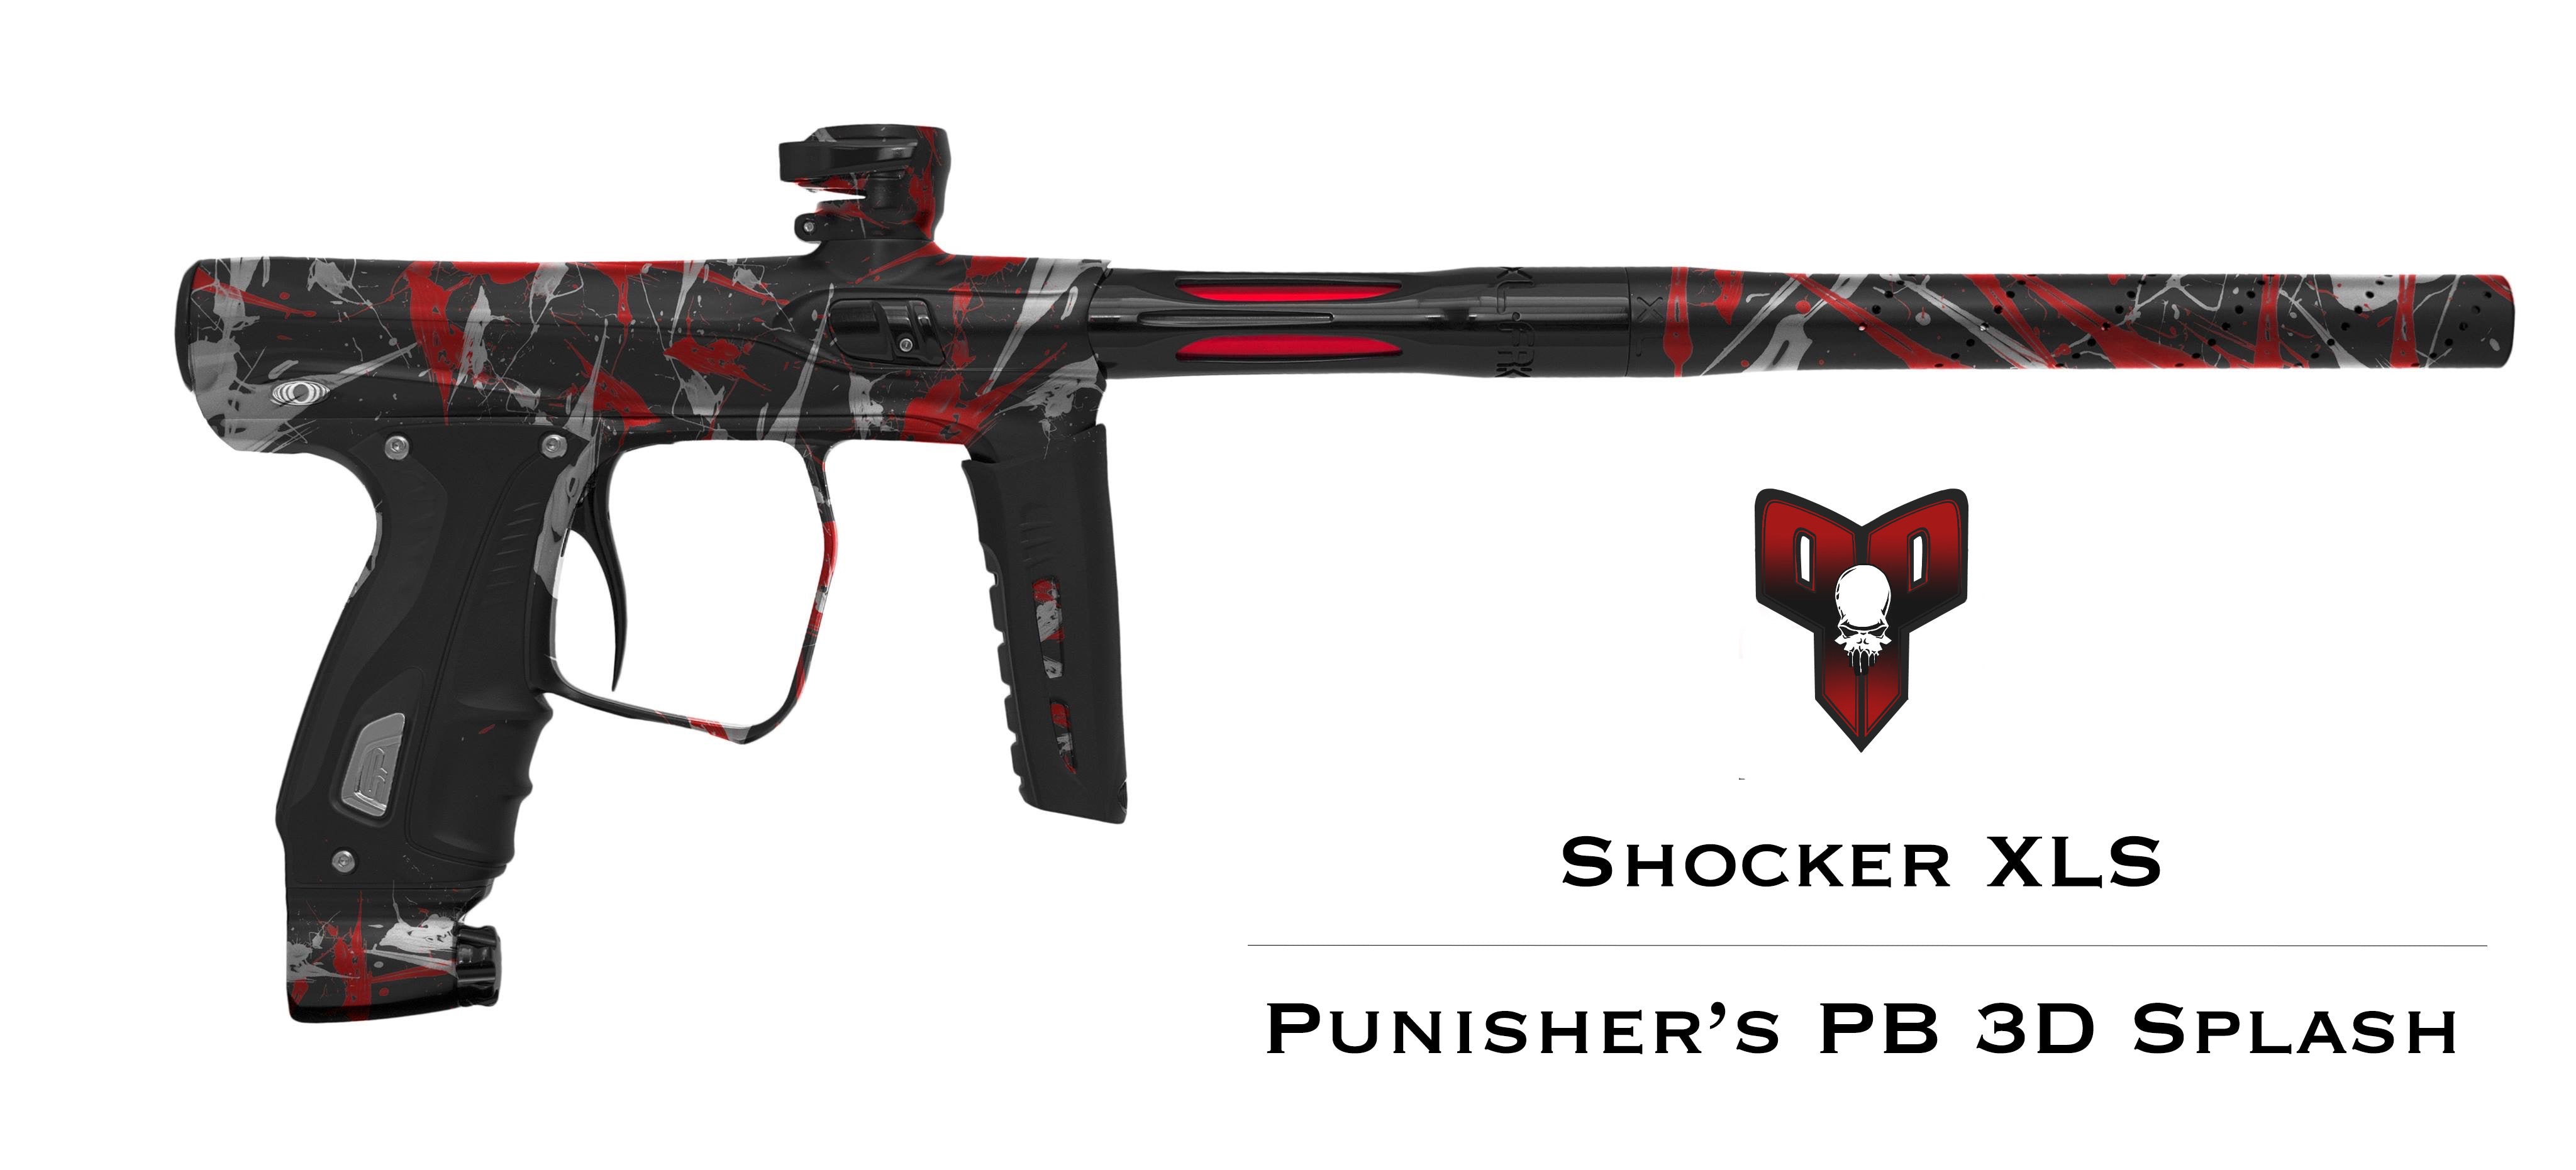 Shocker XLS Paintball Gun - Punishers Paintball Tri Color Splash - Black/Red/Silver